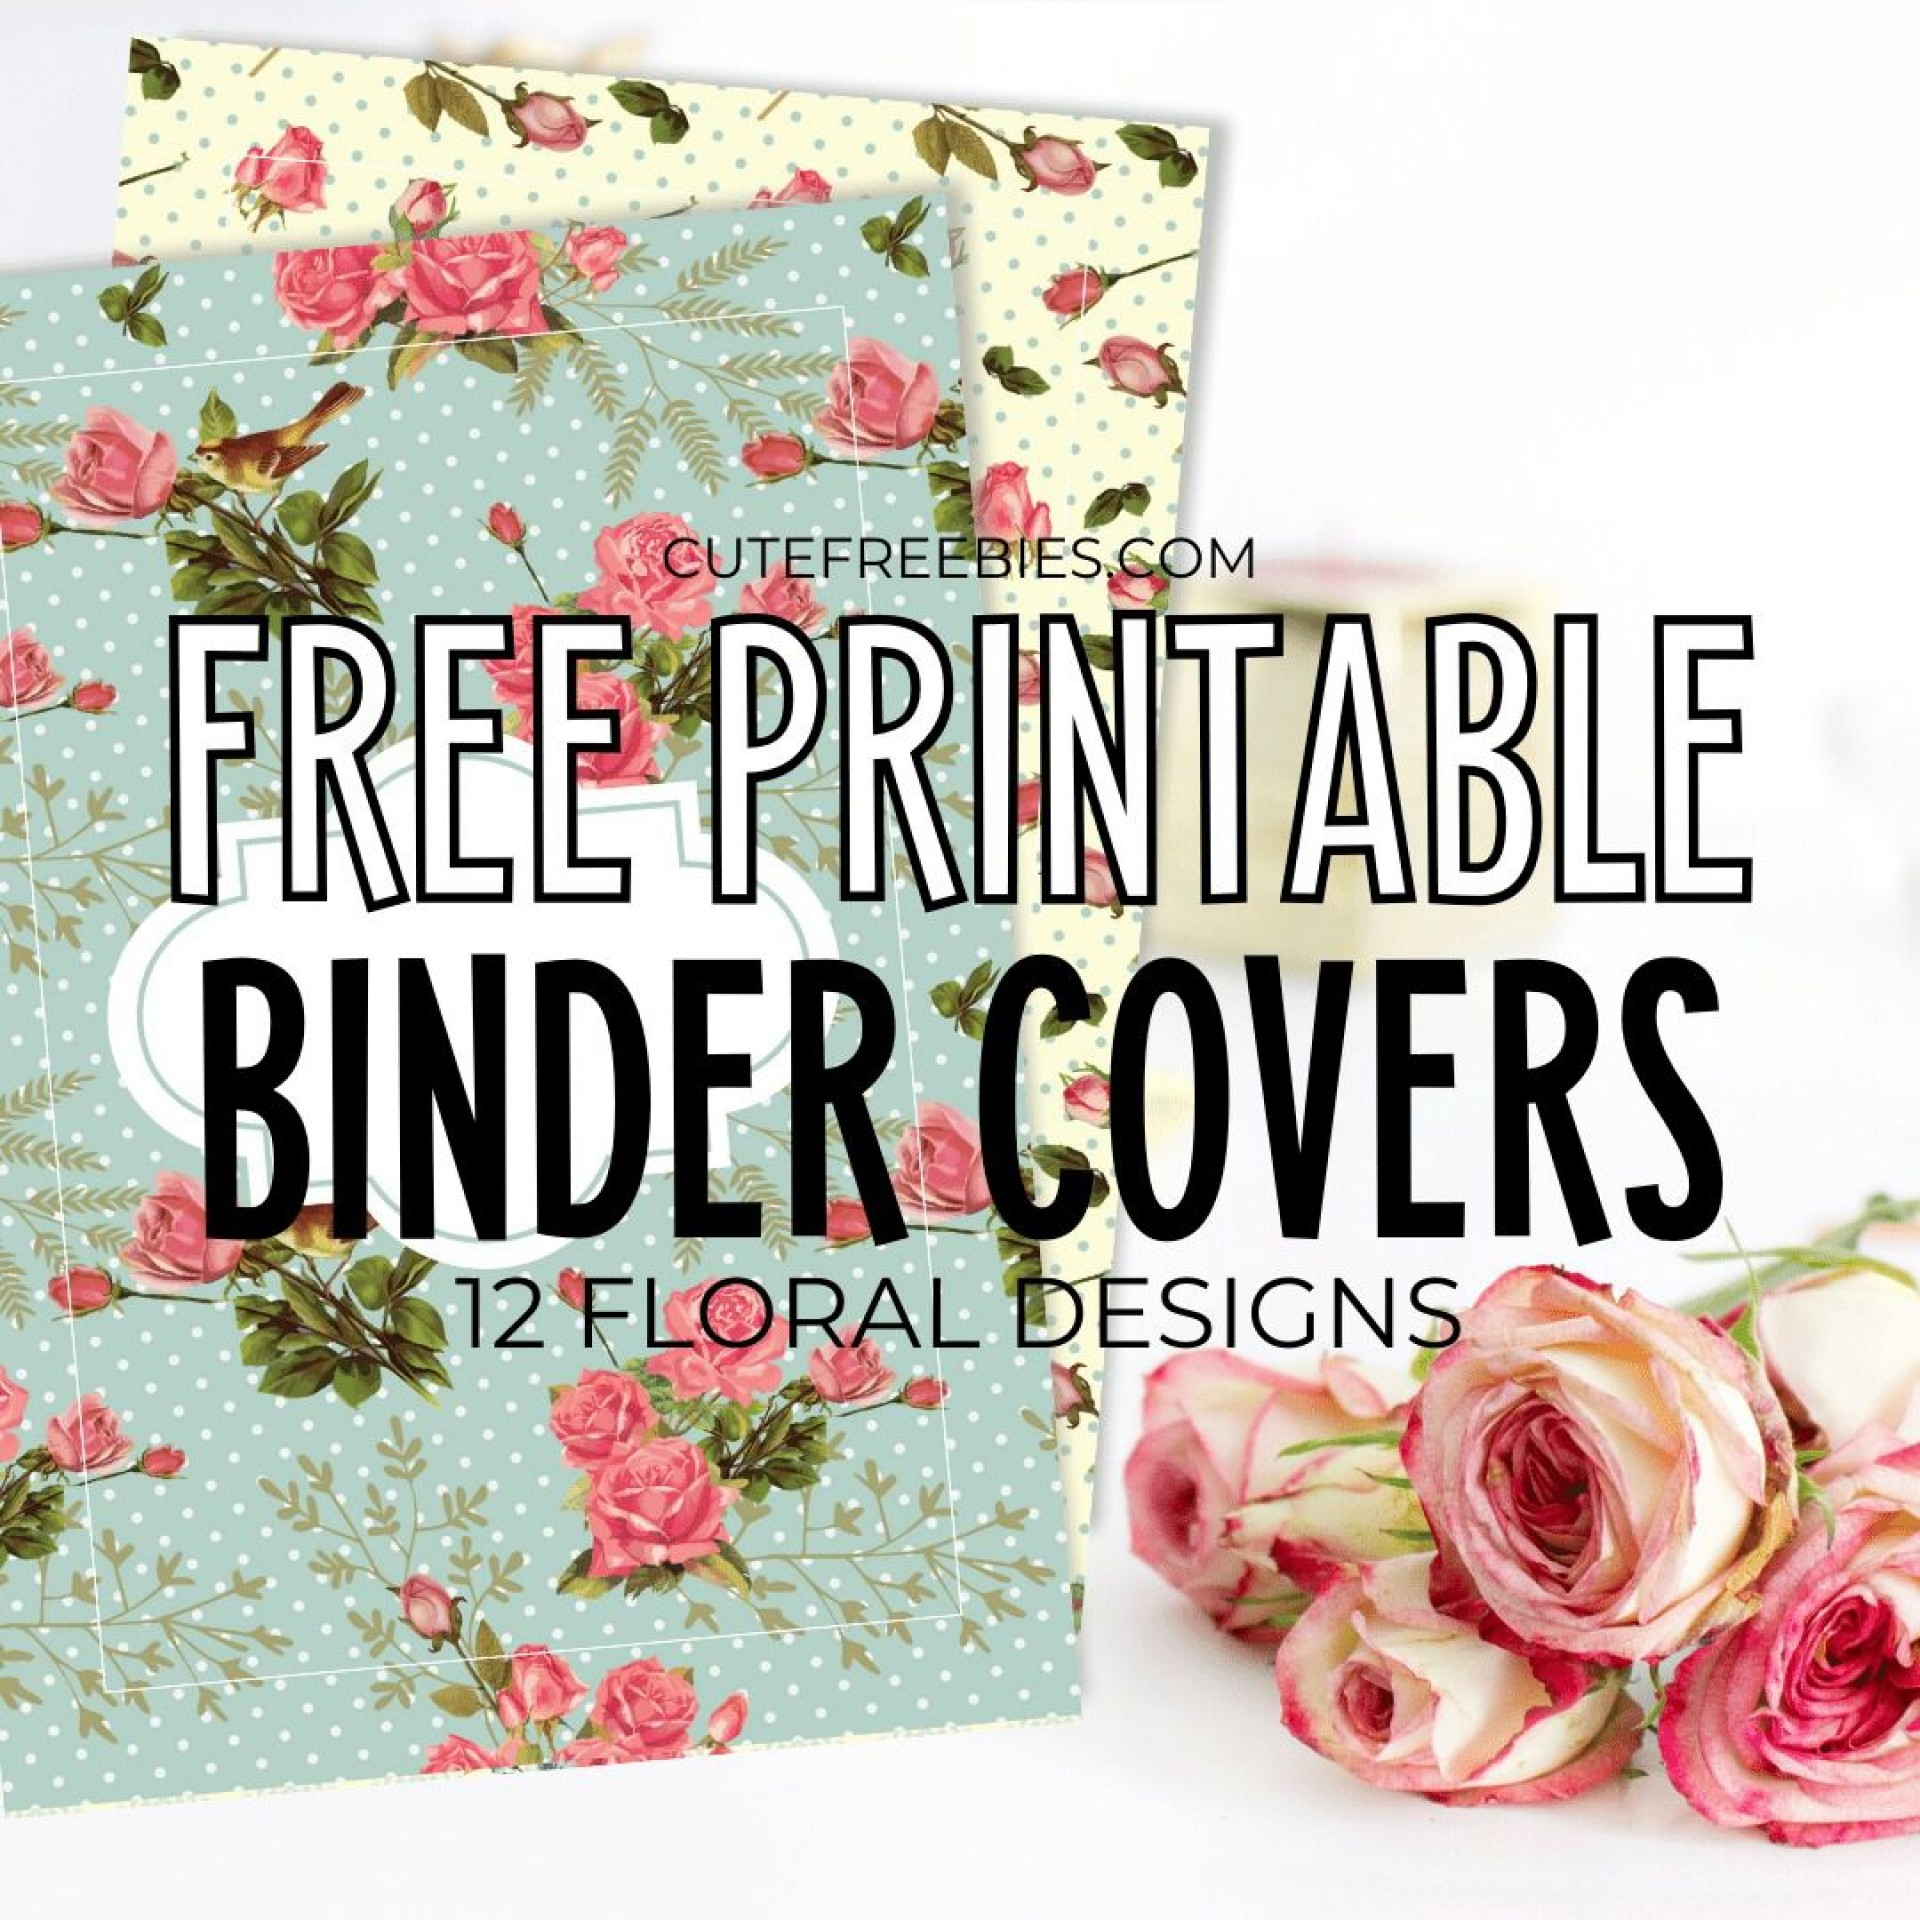 008 Marvelou Cute Binder Cover Template Free Printable Highest Clarity 1920